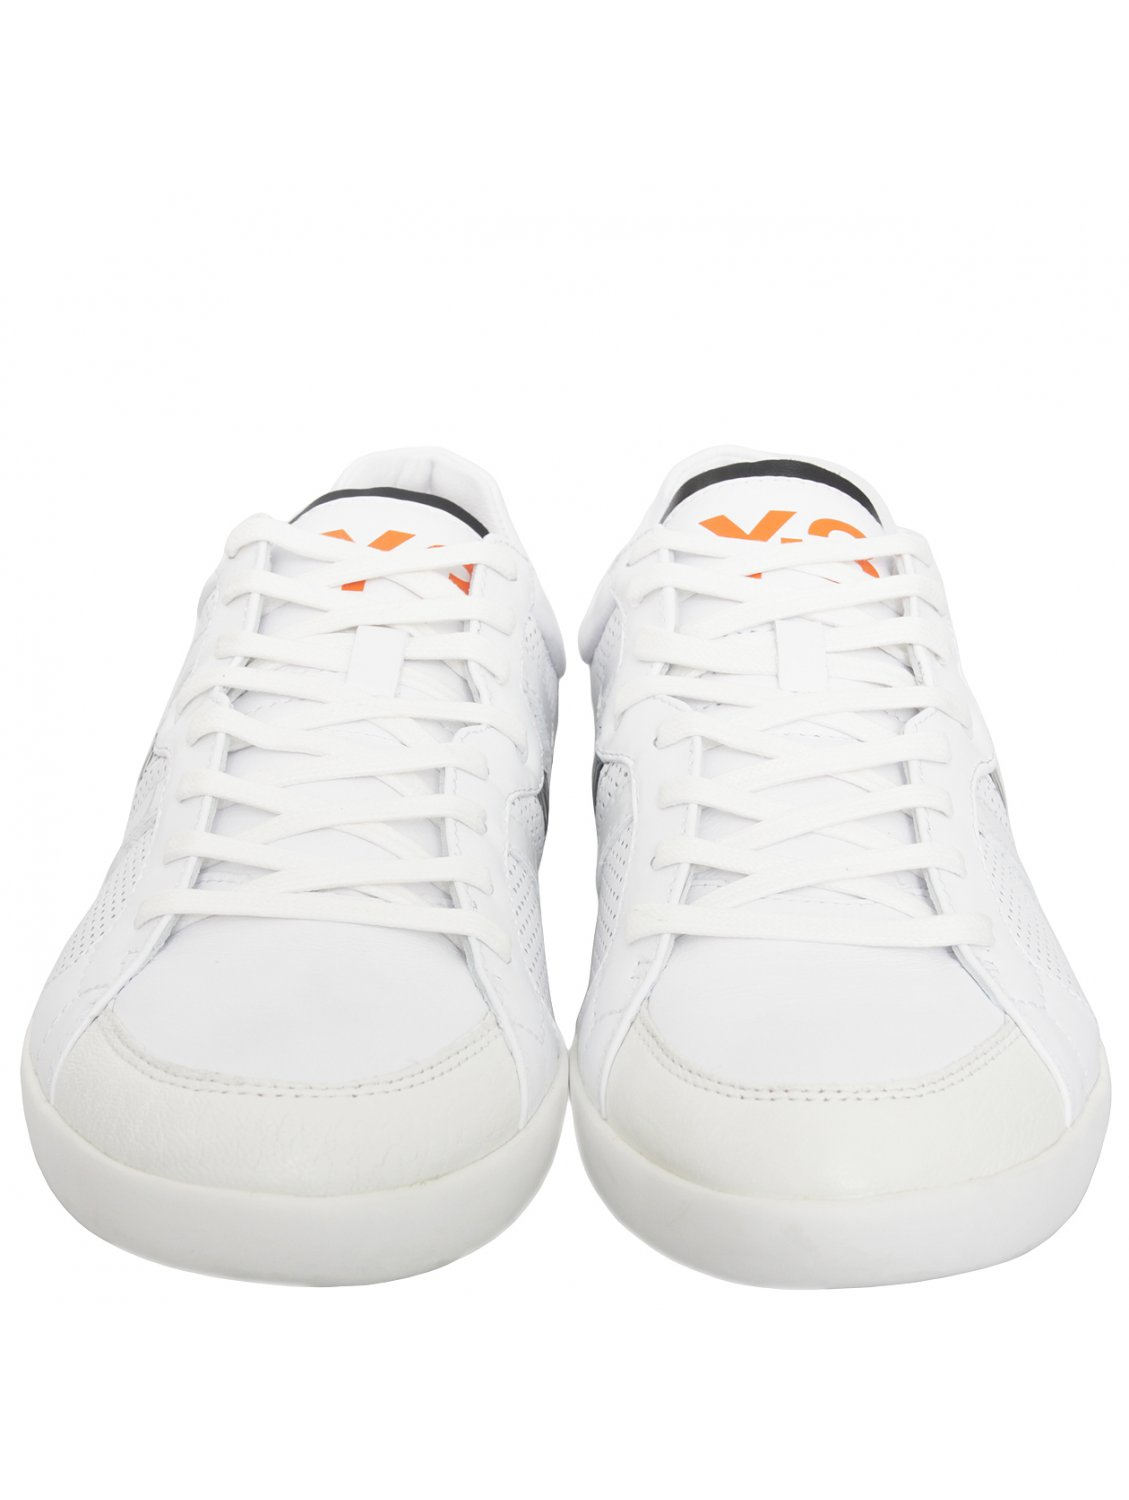 579cdf83afbb1 Y-3 Sala Classic Ii Trainer White in White for Men - Lyst